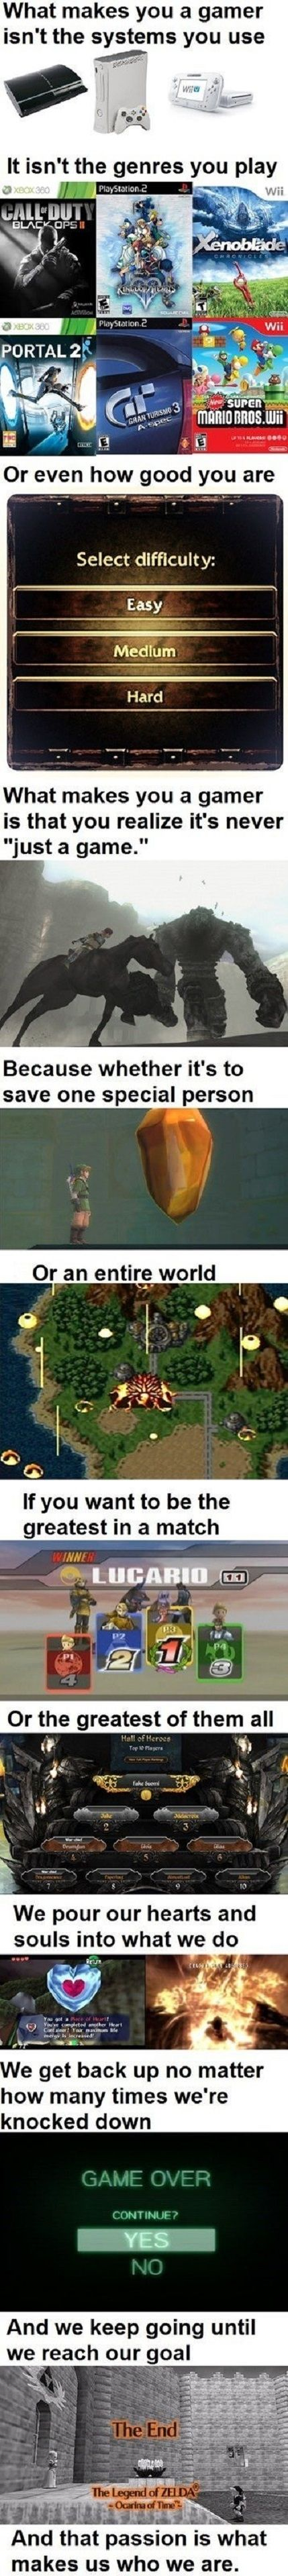 What makes you a gamer // funny pictures - funny photos - funny images - funny pics - funny quotes - #lol #humor #funnypictures